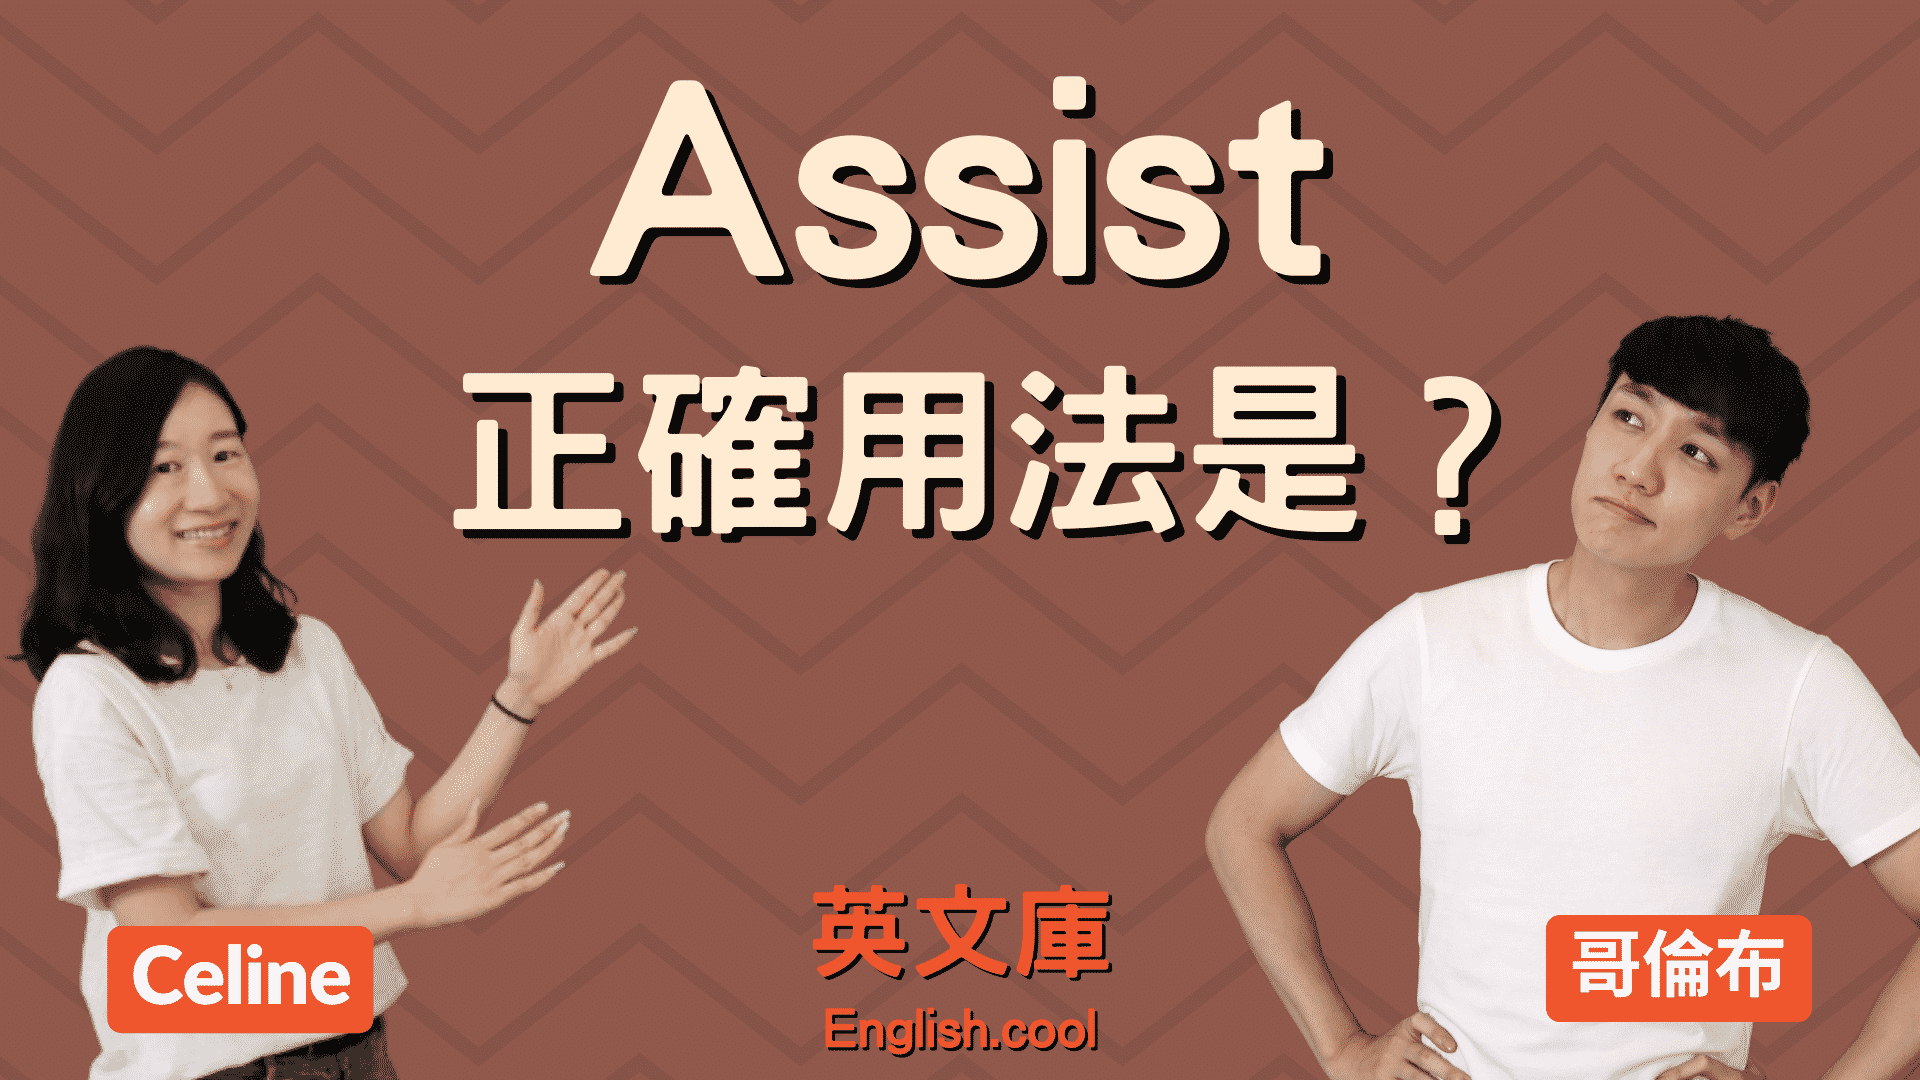 You are currently viewing 「assist」正確用法是?看例句一次搞懂!